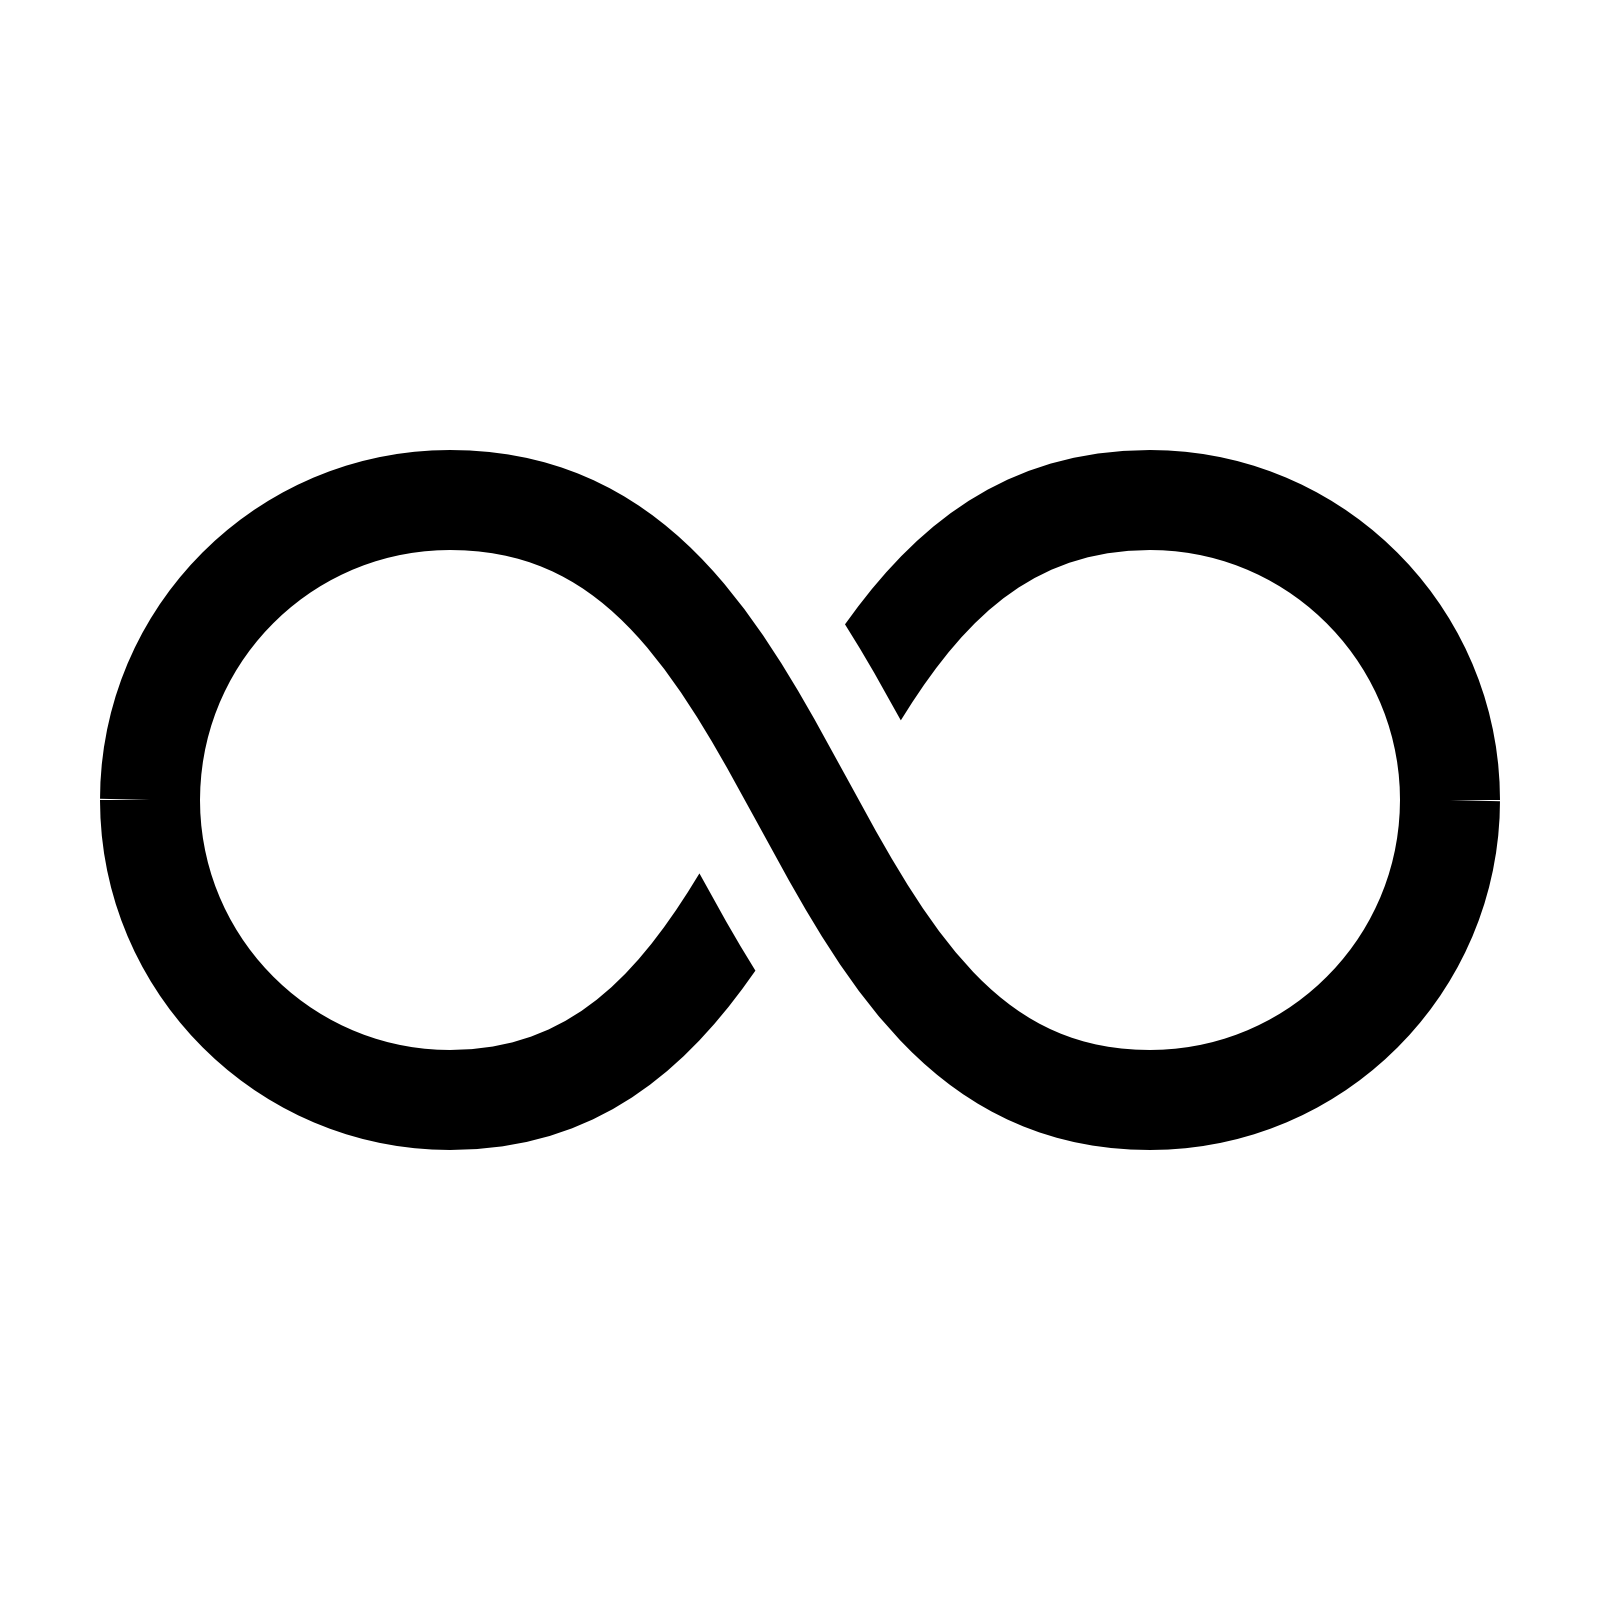 Heart infinity symbol png. Images free download